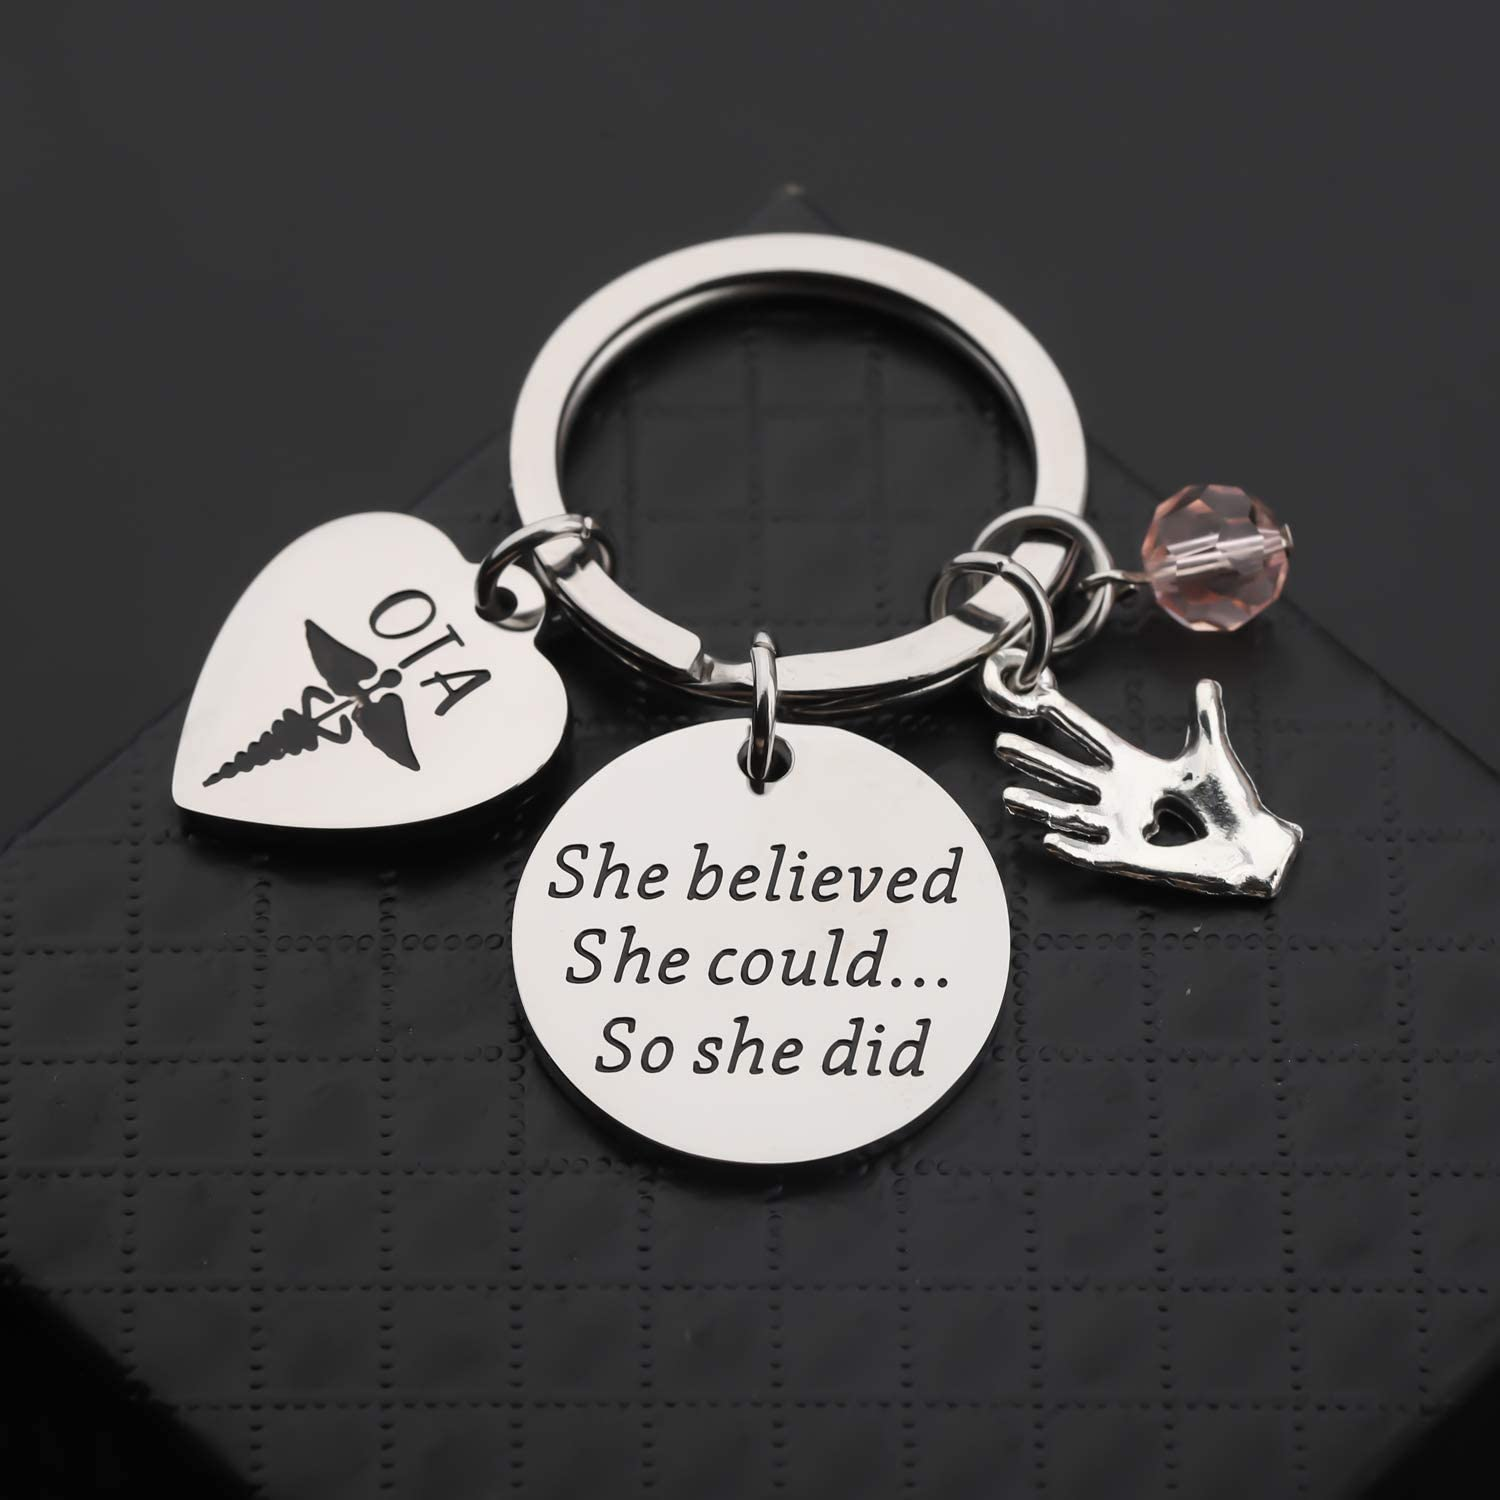 TIIMG OTA Gift Occupational Therapist Assistant Graduation Gift OTA Graduate She Believed She Could So She Did Medical School Gift